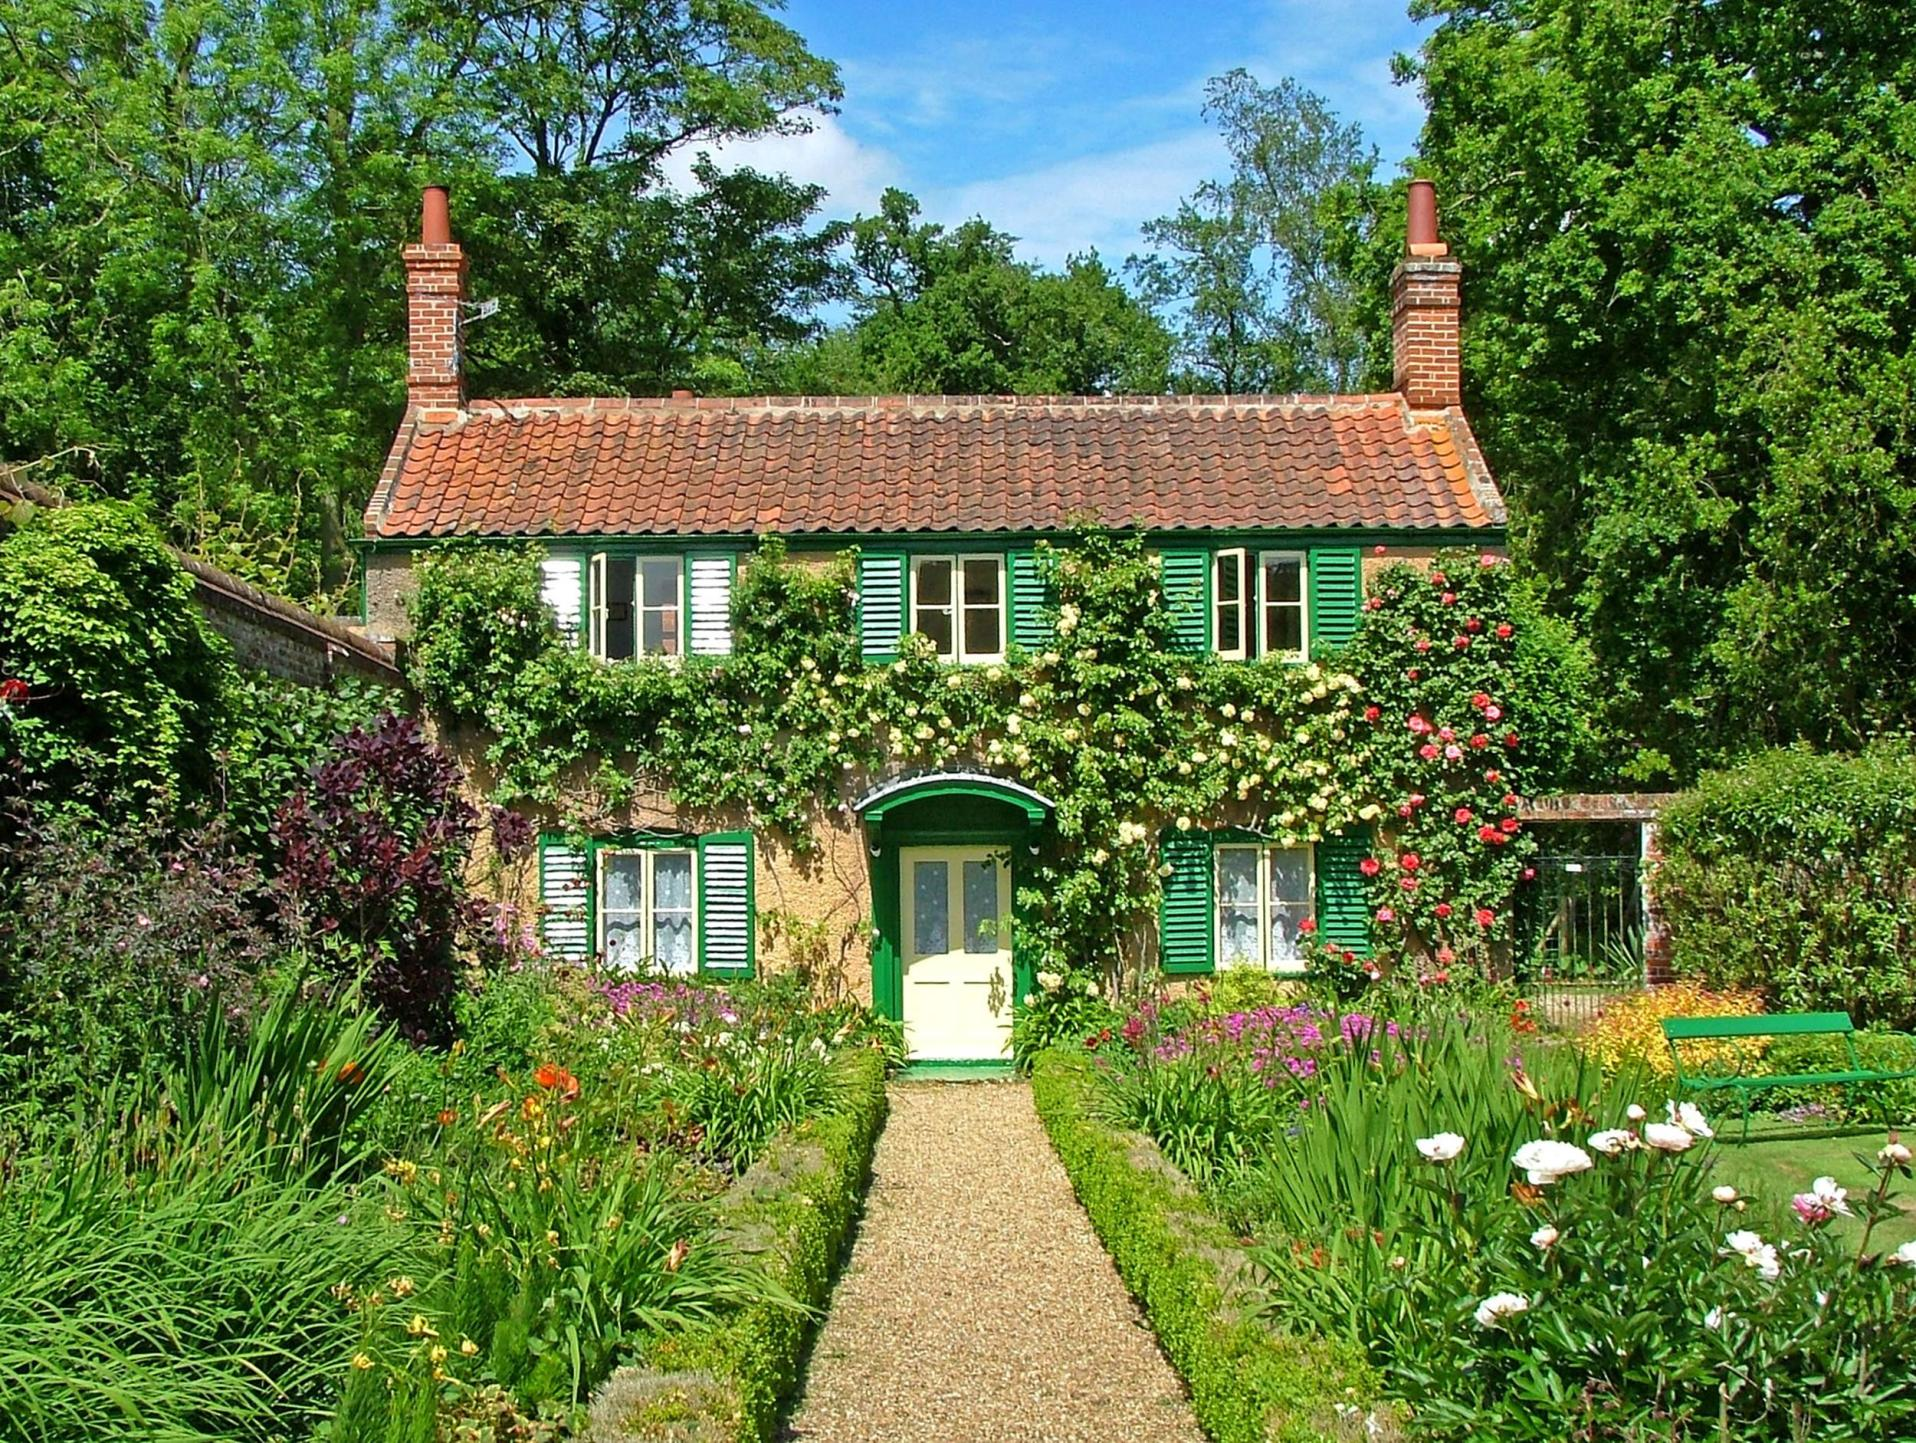 Stunning Country Cottage Gardens Ideas 19